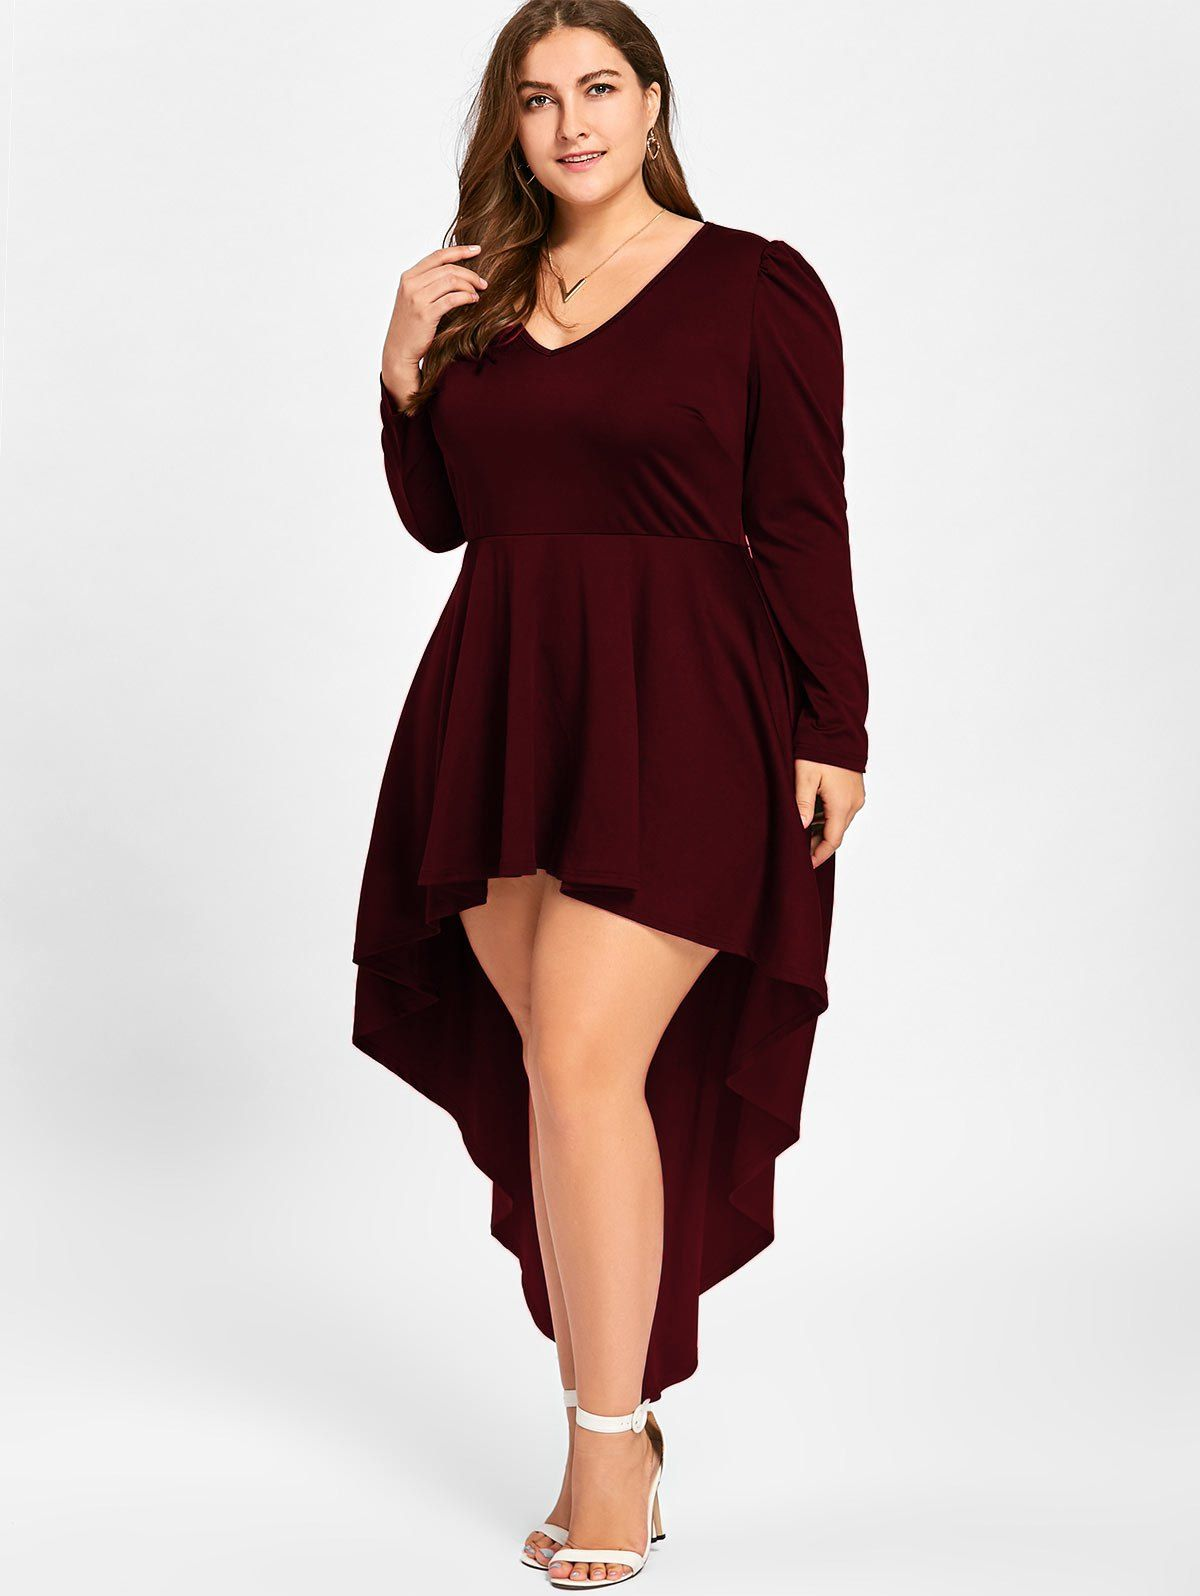 Plus Size V Neck Cocktail Dress In Wine Red 2xl Twinkledeals Com Fall Dresses To Wear To A W Classy Dress Plus Size Party Dresses Long Sleeve Cocktail Dress [ 1596 x 1200 Pixel ]